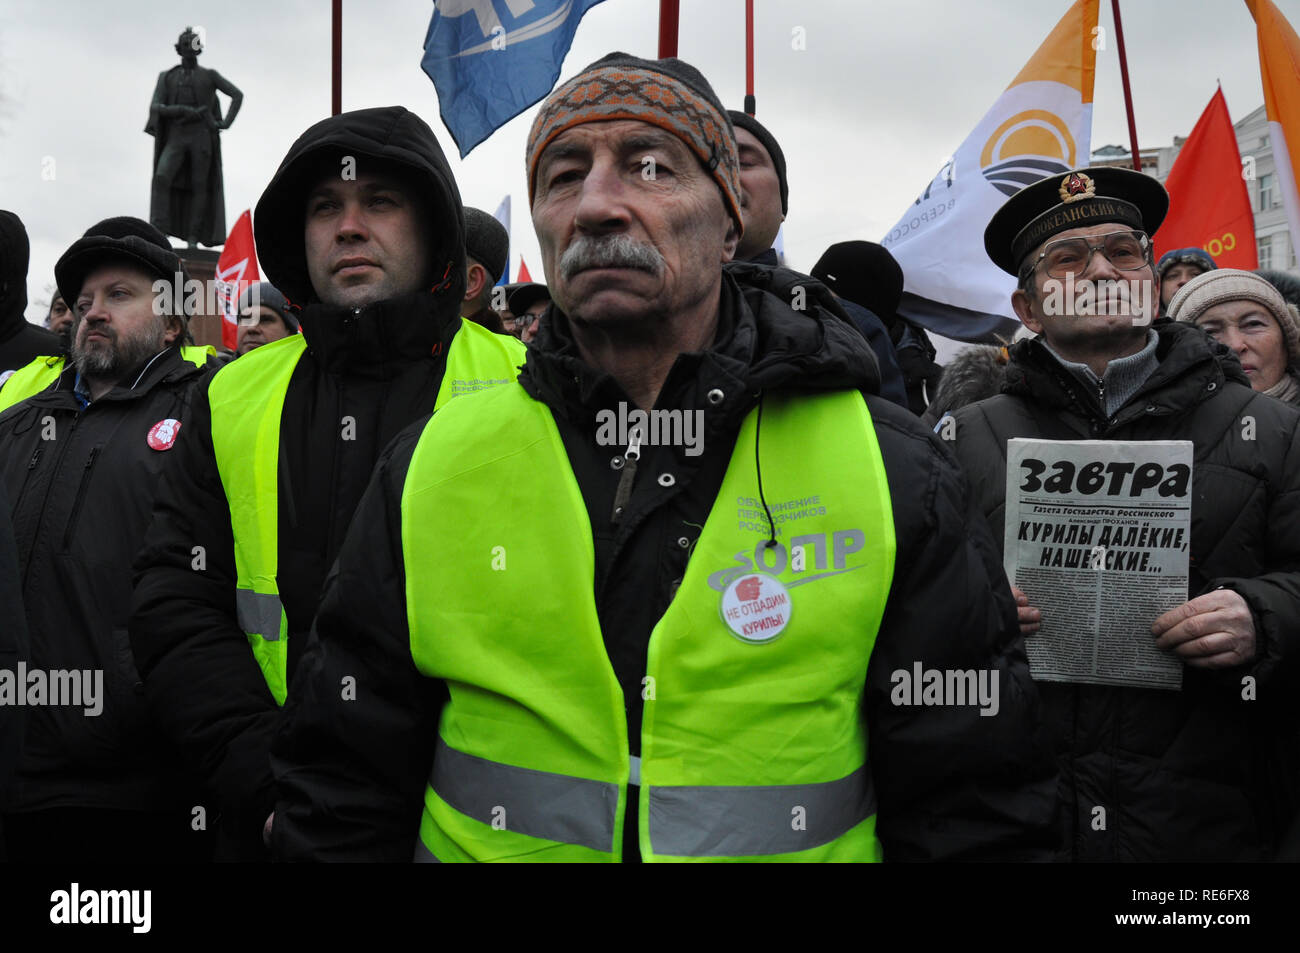 Moscow, Russia. 20th Jan, 2019. Activists in yellow vests at a protest. Hundreds from both left and right protest possible handover of contested Kuril islands (Northern territories) to Japan at a rally in central Moscow. Credit: Aleks Lokhmutov/Alamy Live News. - Stock Image